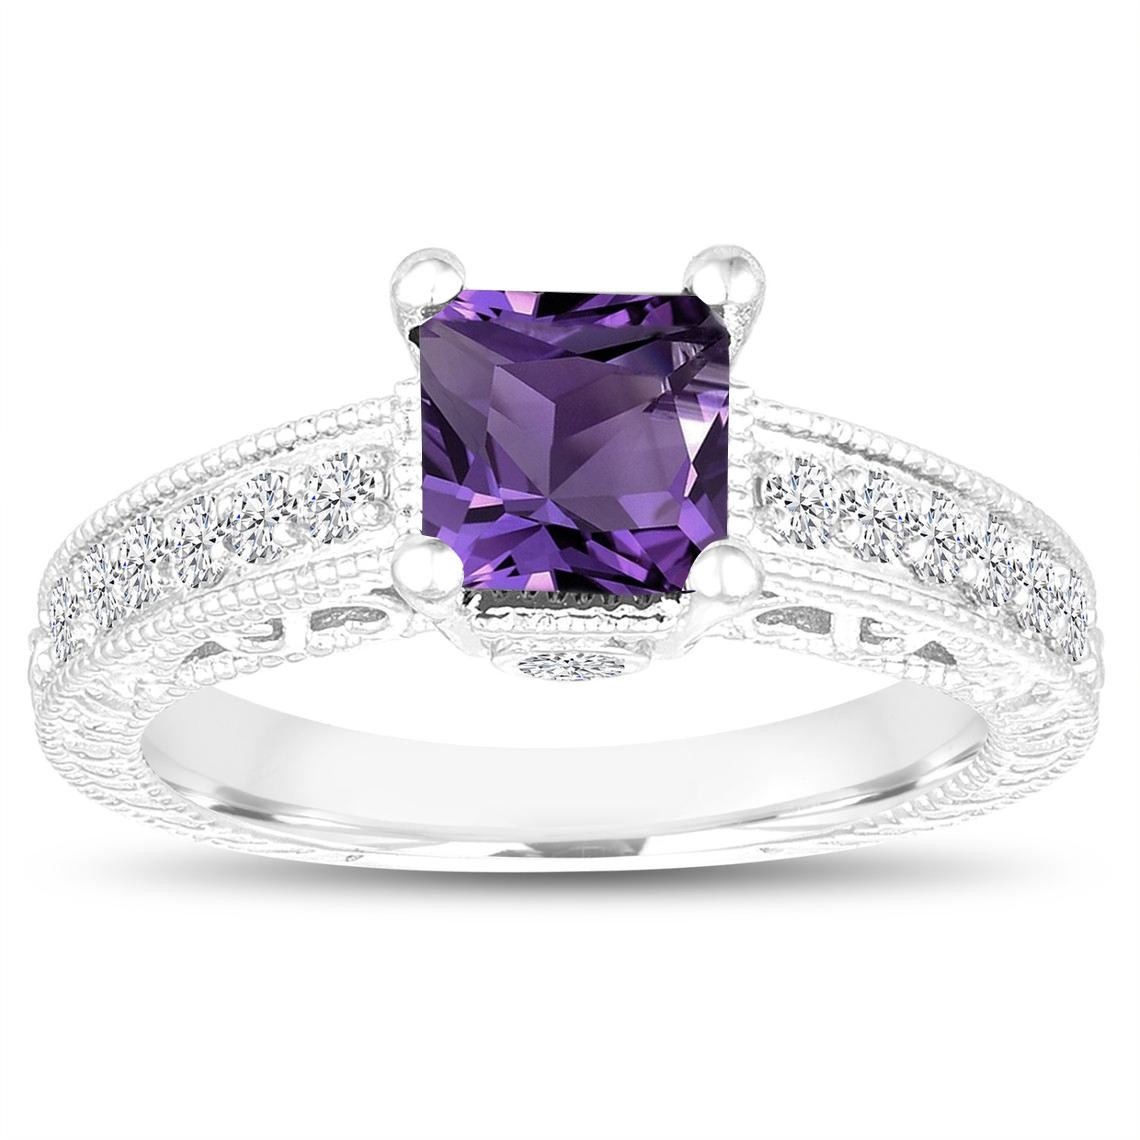 1583747425f19 1.35 Carat Princess Cut Amethyst Engagement Ring, Wedding Ring, 14k White  Gold Unique Vintage Antique Style Handmade Certified